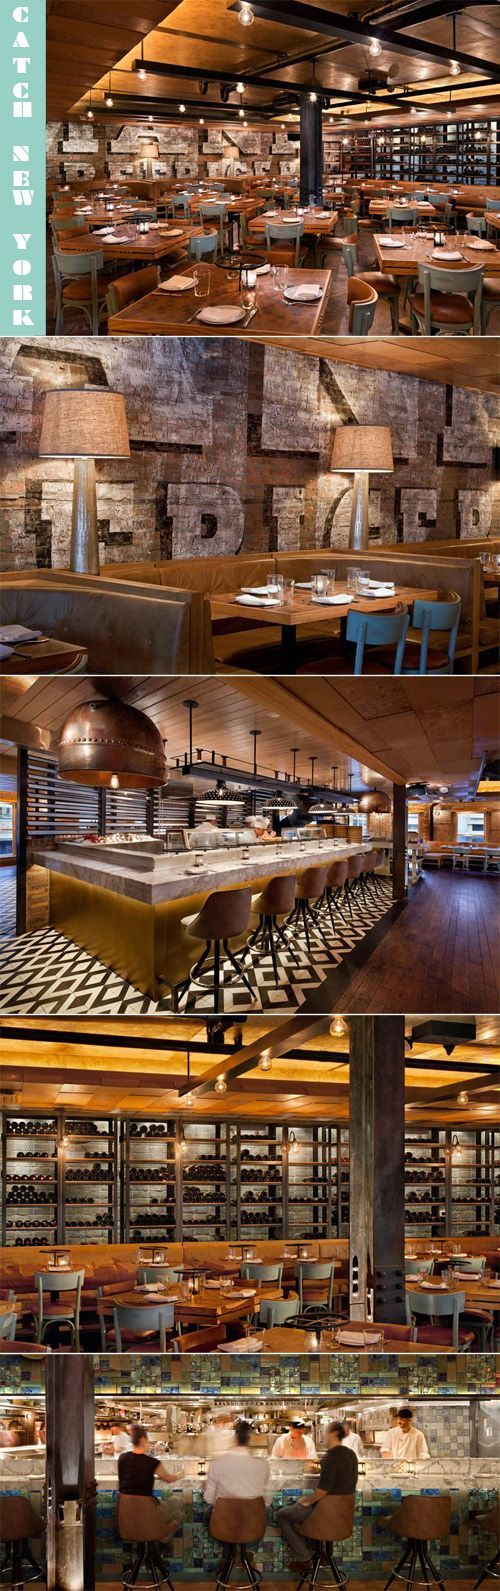 Architecture restaurant and industrial on pinterest